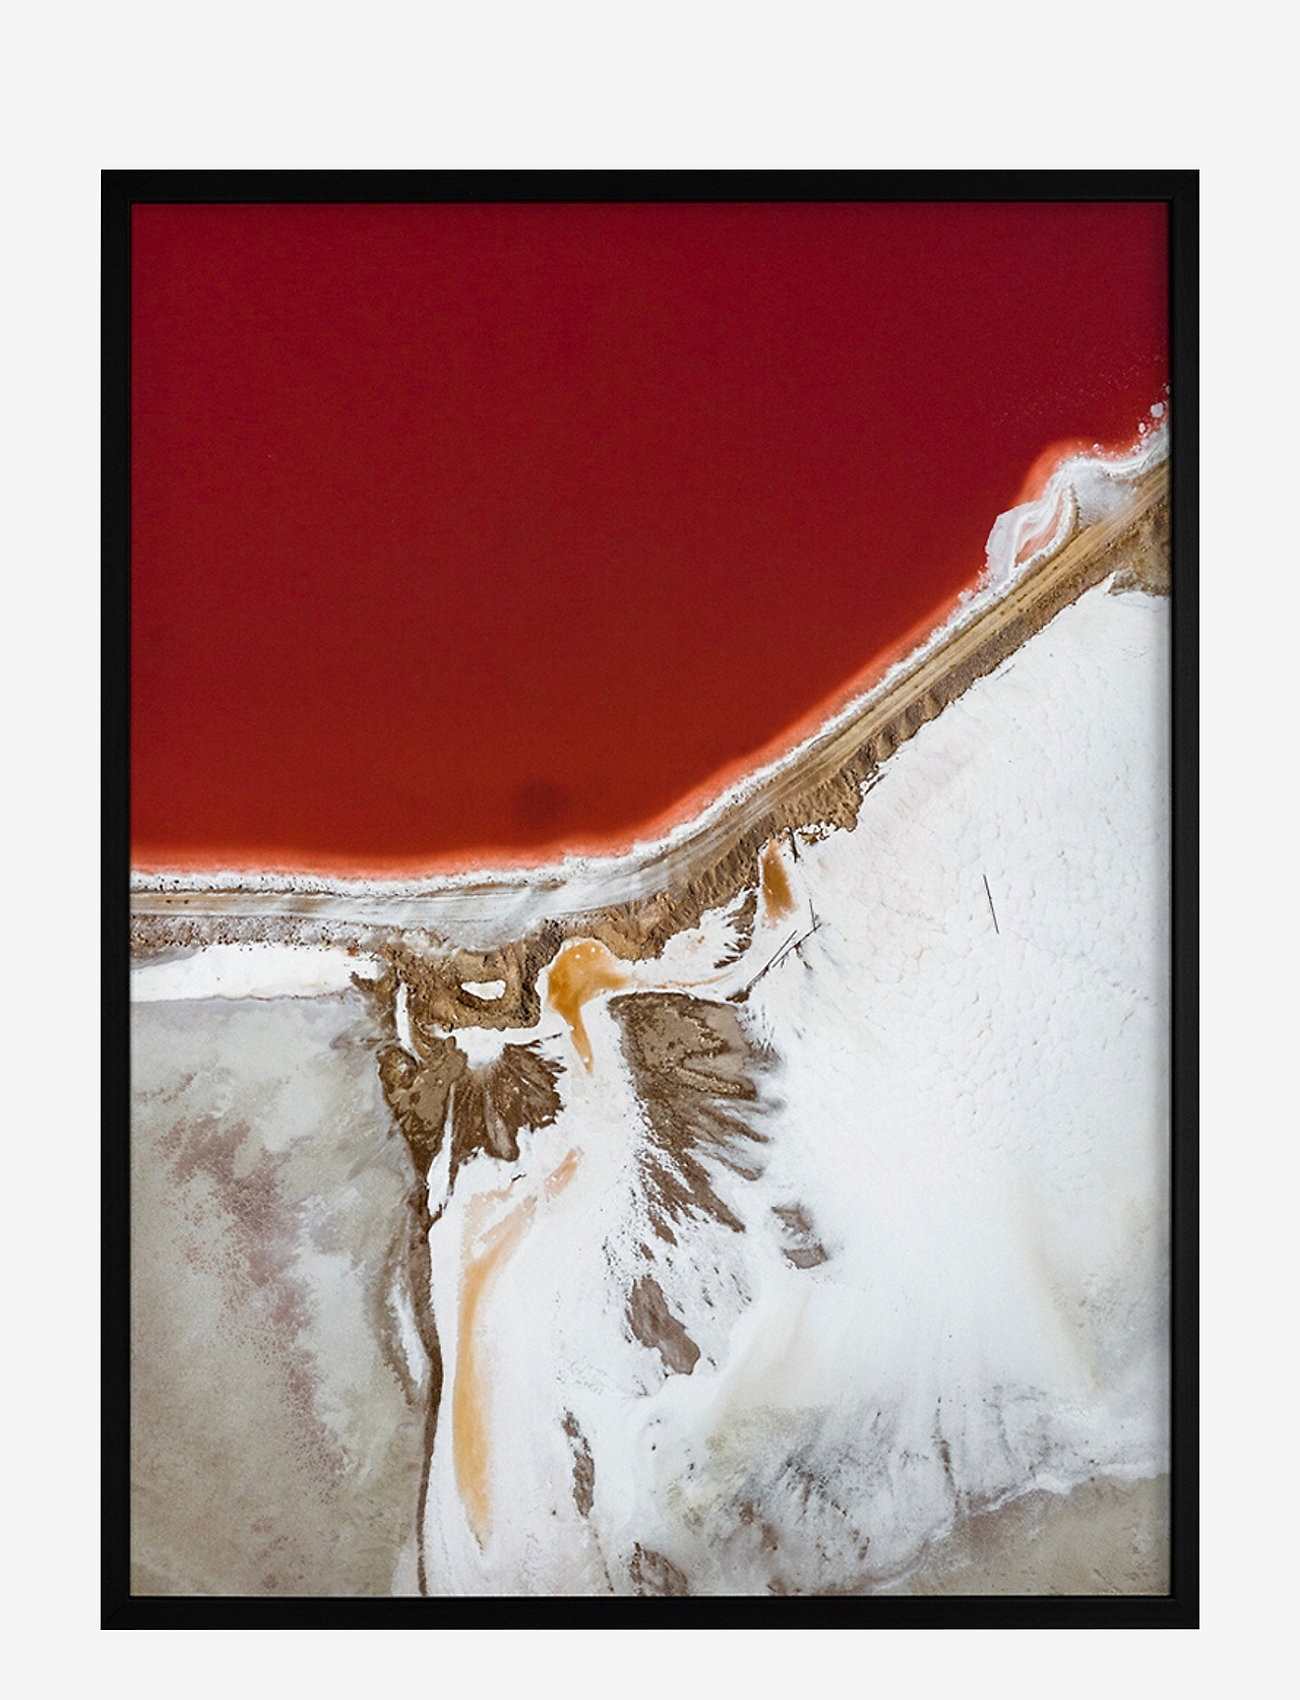 Democratic Gallery - Poster Earth and Nature - décor - red - 0